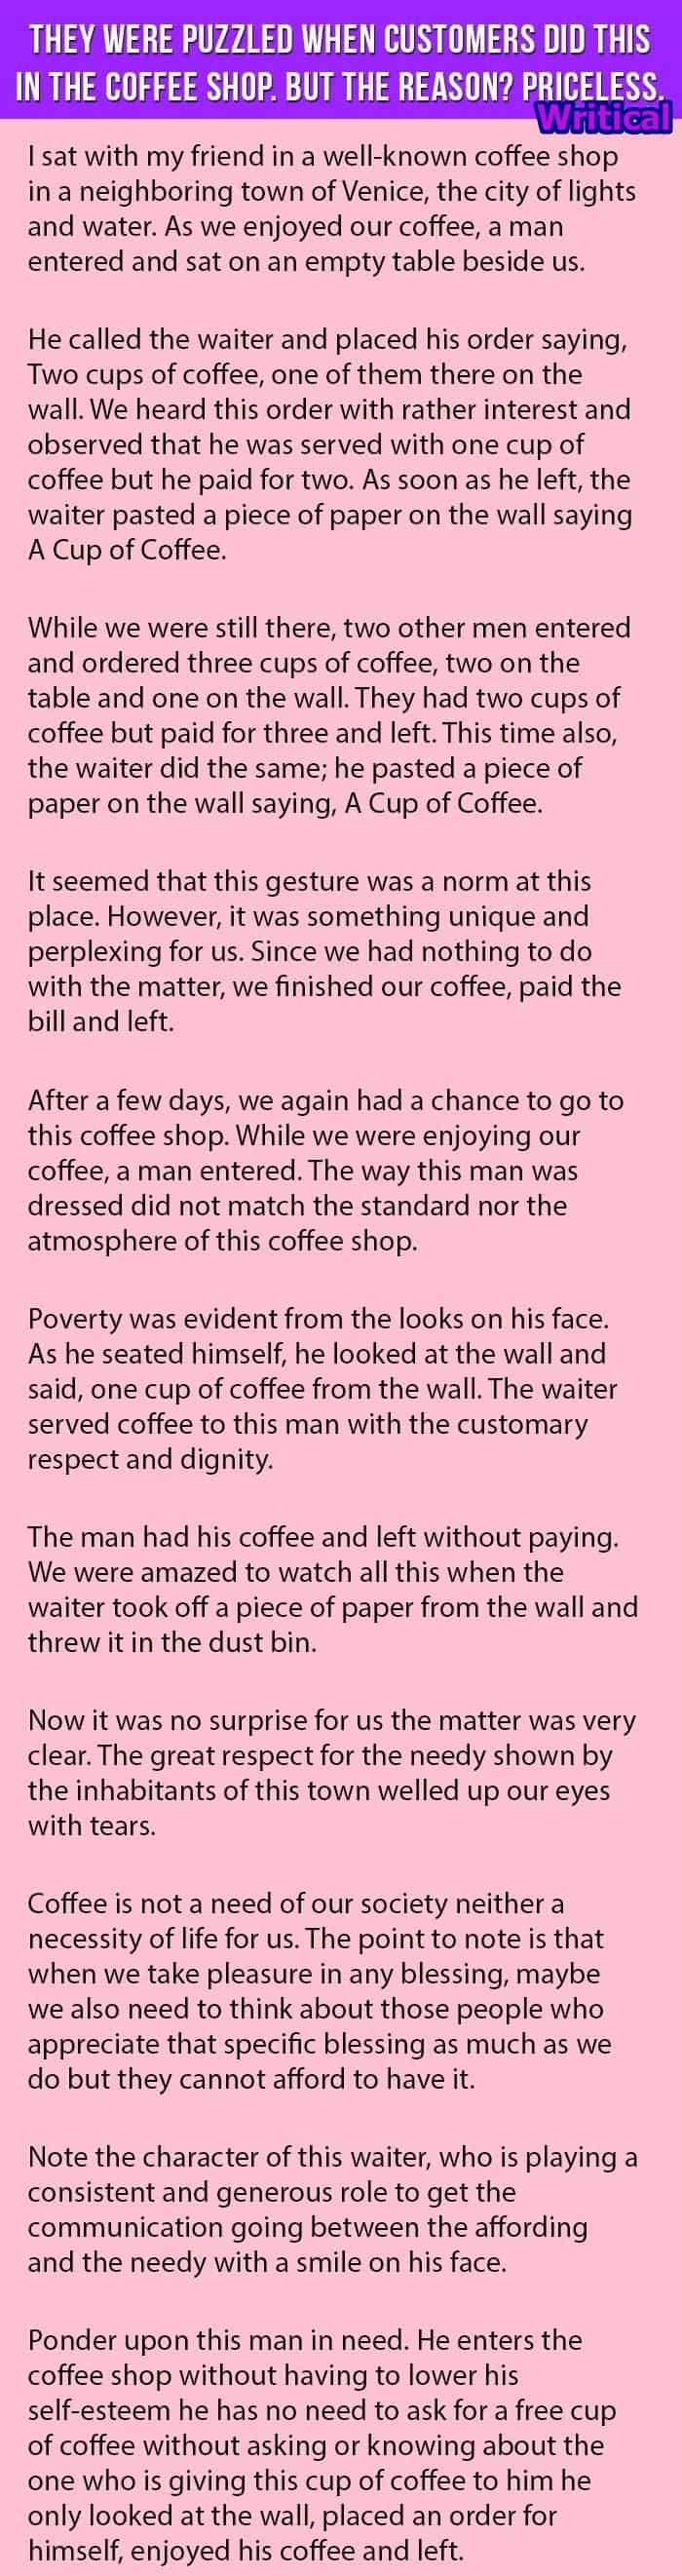 Priceless Reason behind Customer's Act in Coffee Shop!